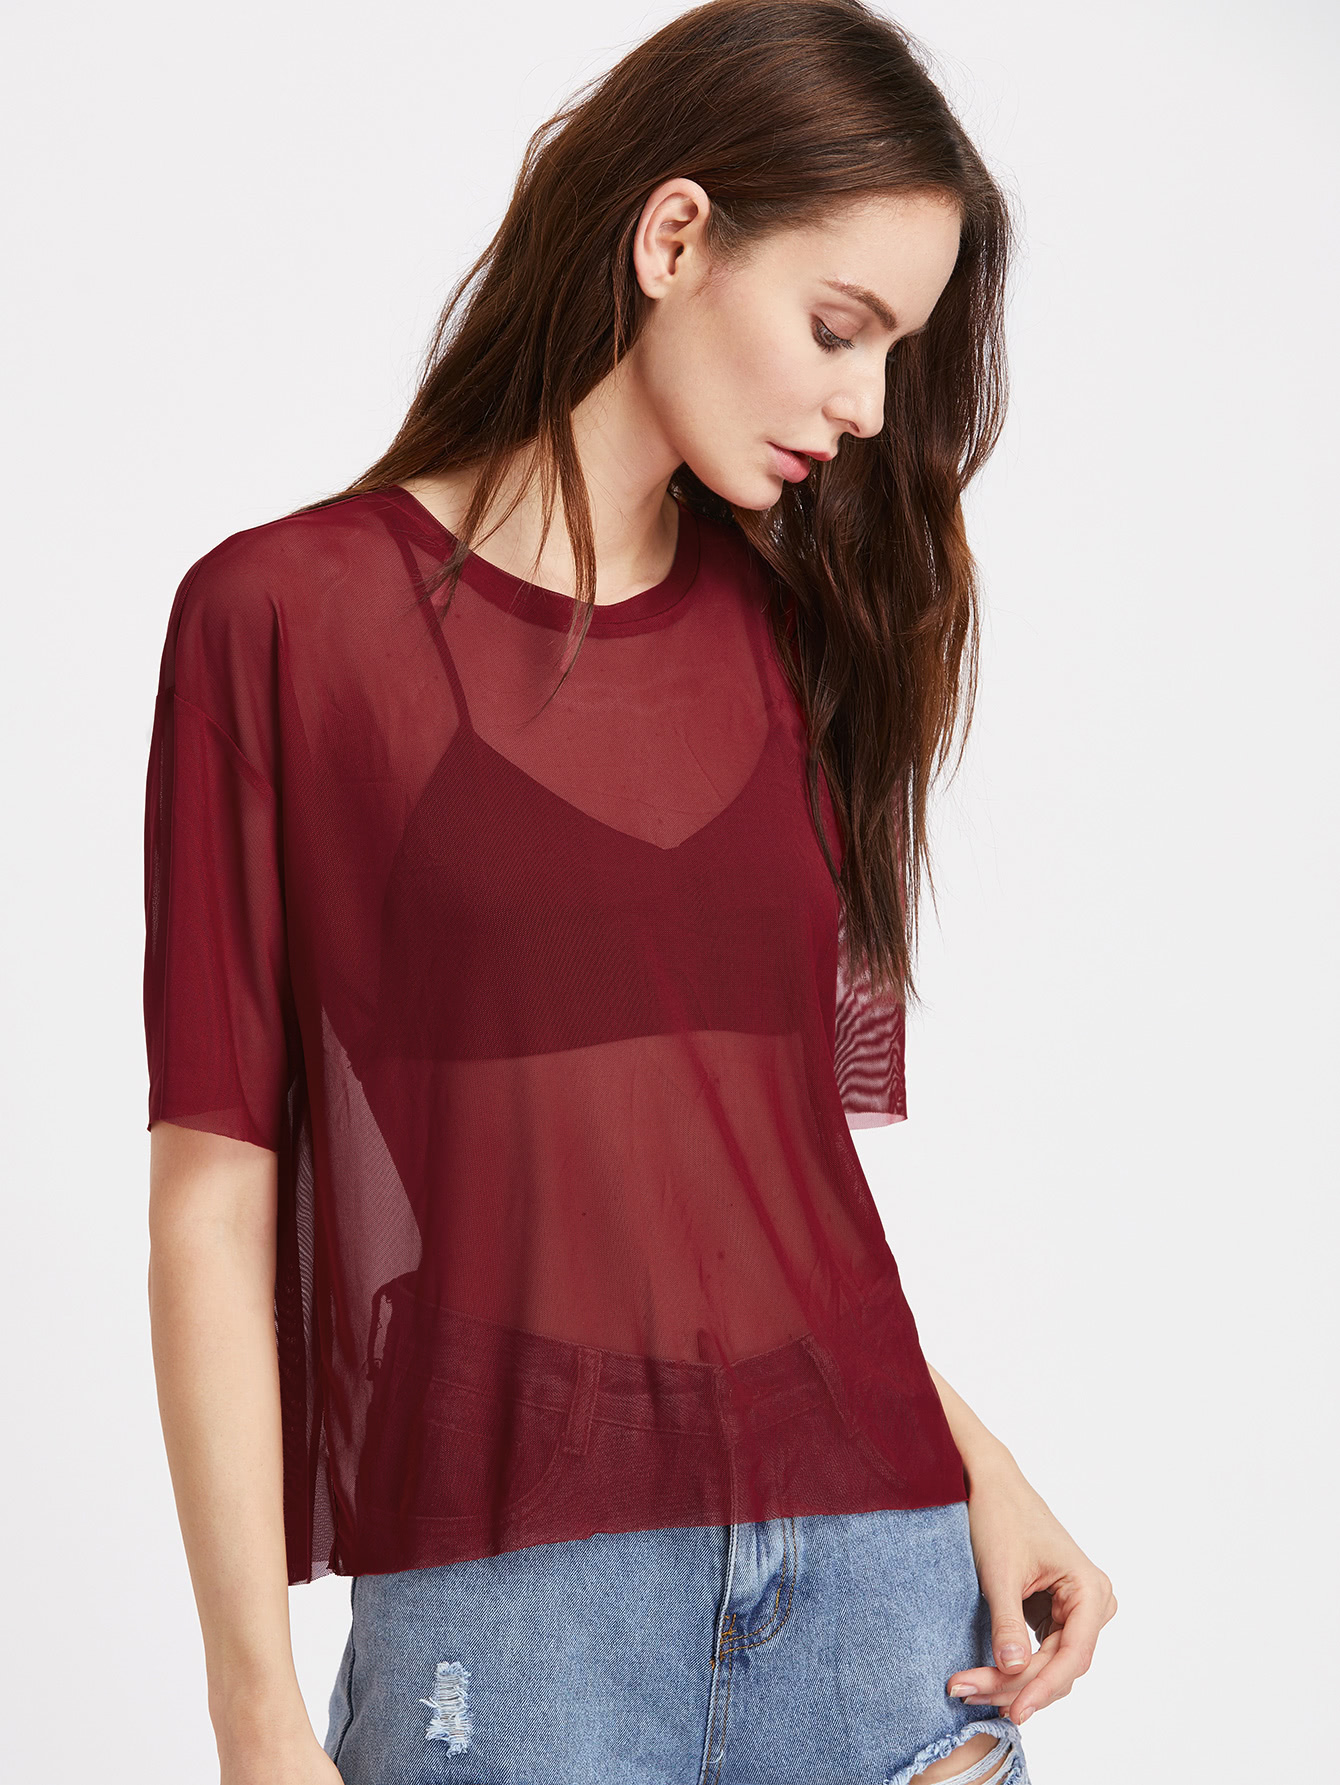 Drop Shoulder Boxy Sheer Mesh Top серьги polina selezneva серьги ps by polina selezneva